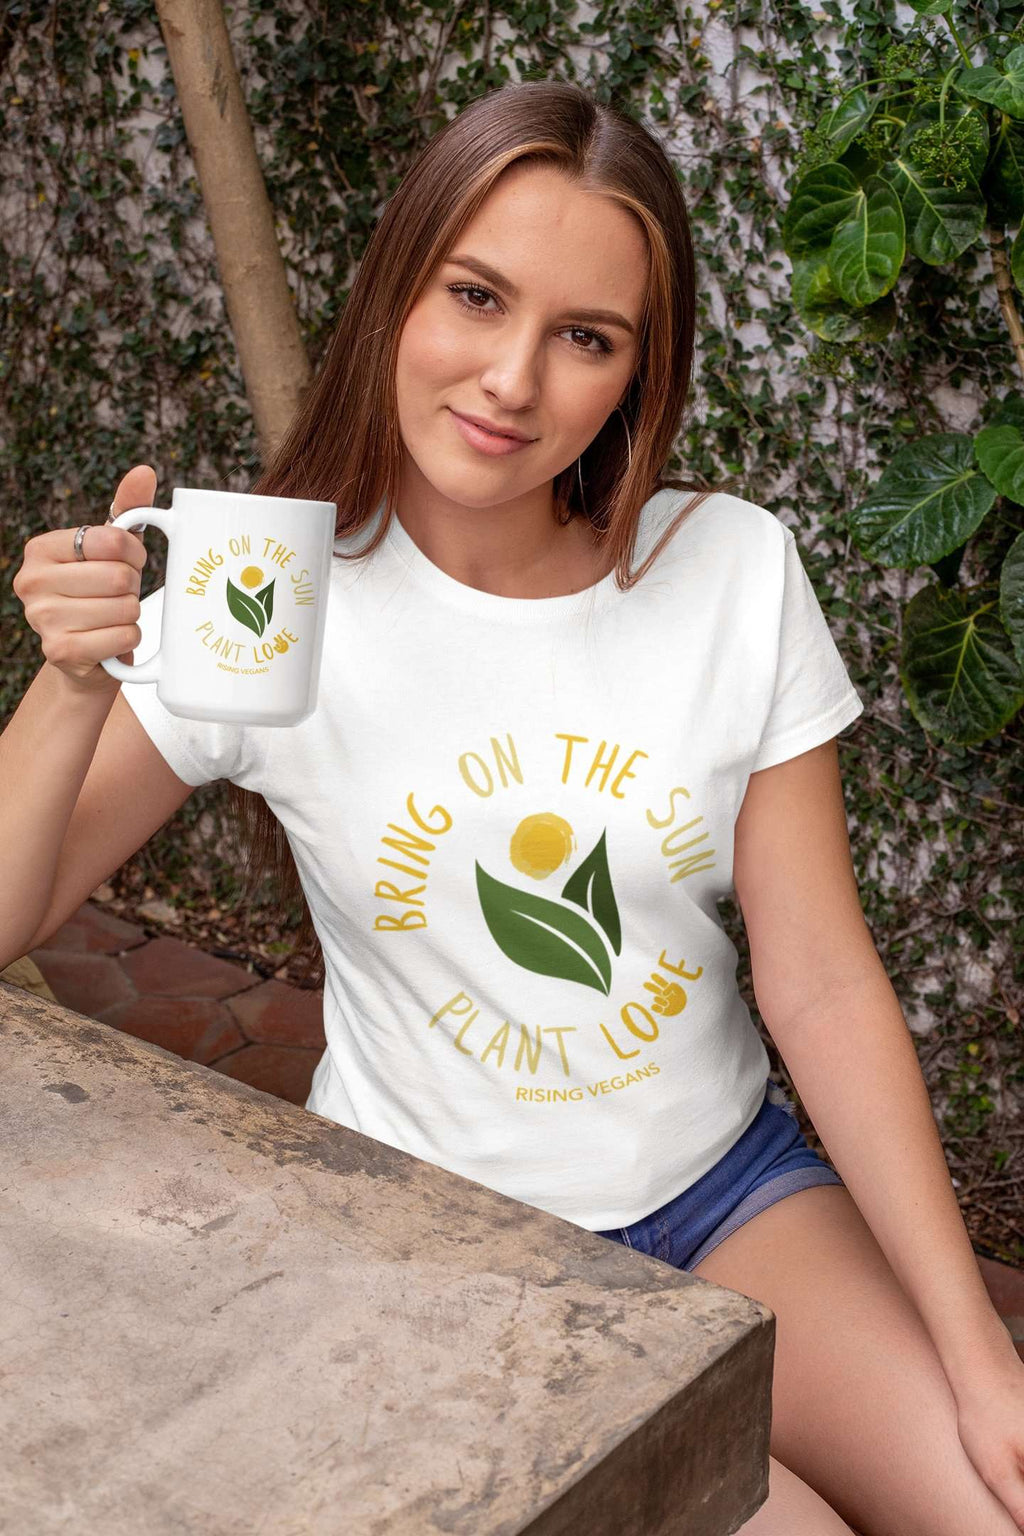 Bring on the Sun Tee - Rising Vegans